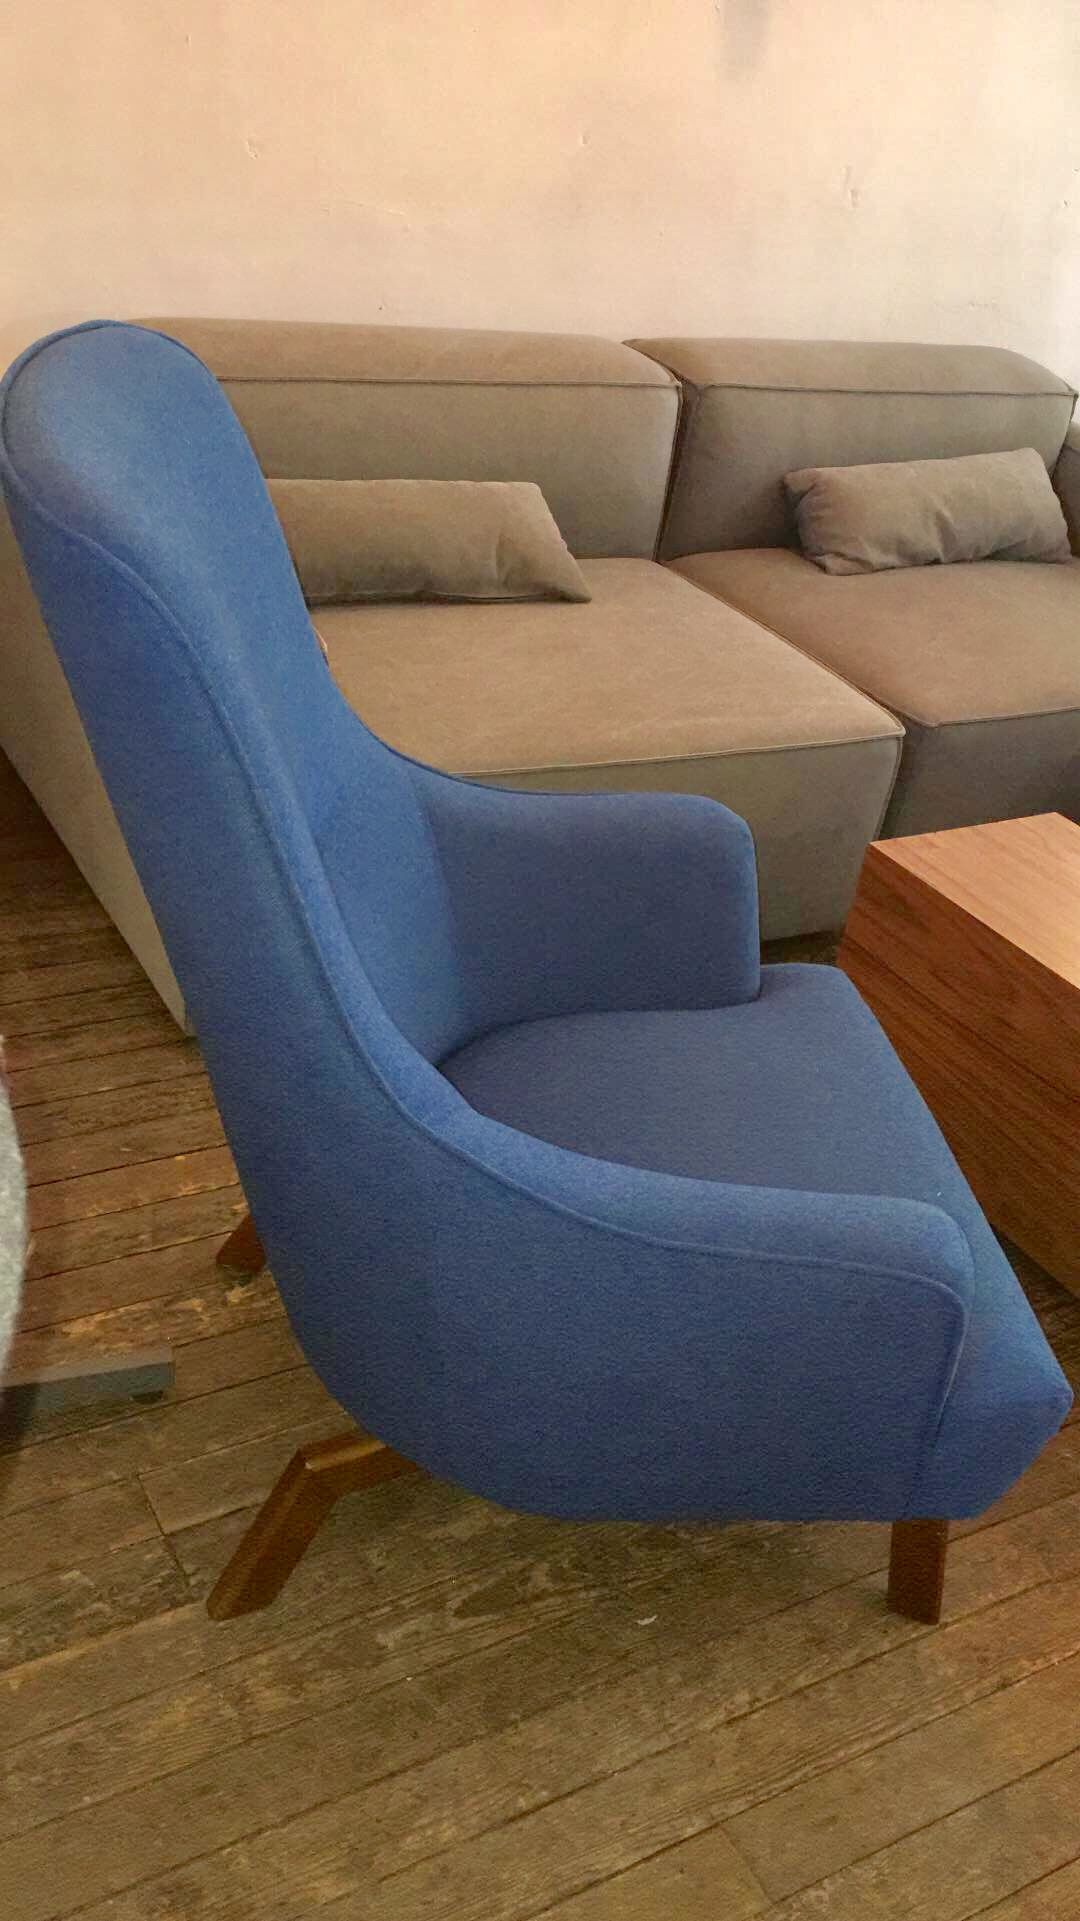 Prime Hilary Chair And Mix Modular Sofa By Gus Modern Brooklyn Pabps2019 Chair Design Images Pabps2019Com